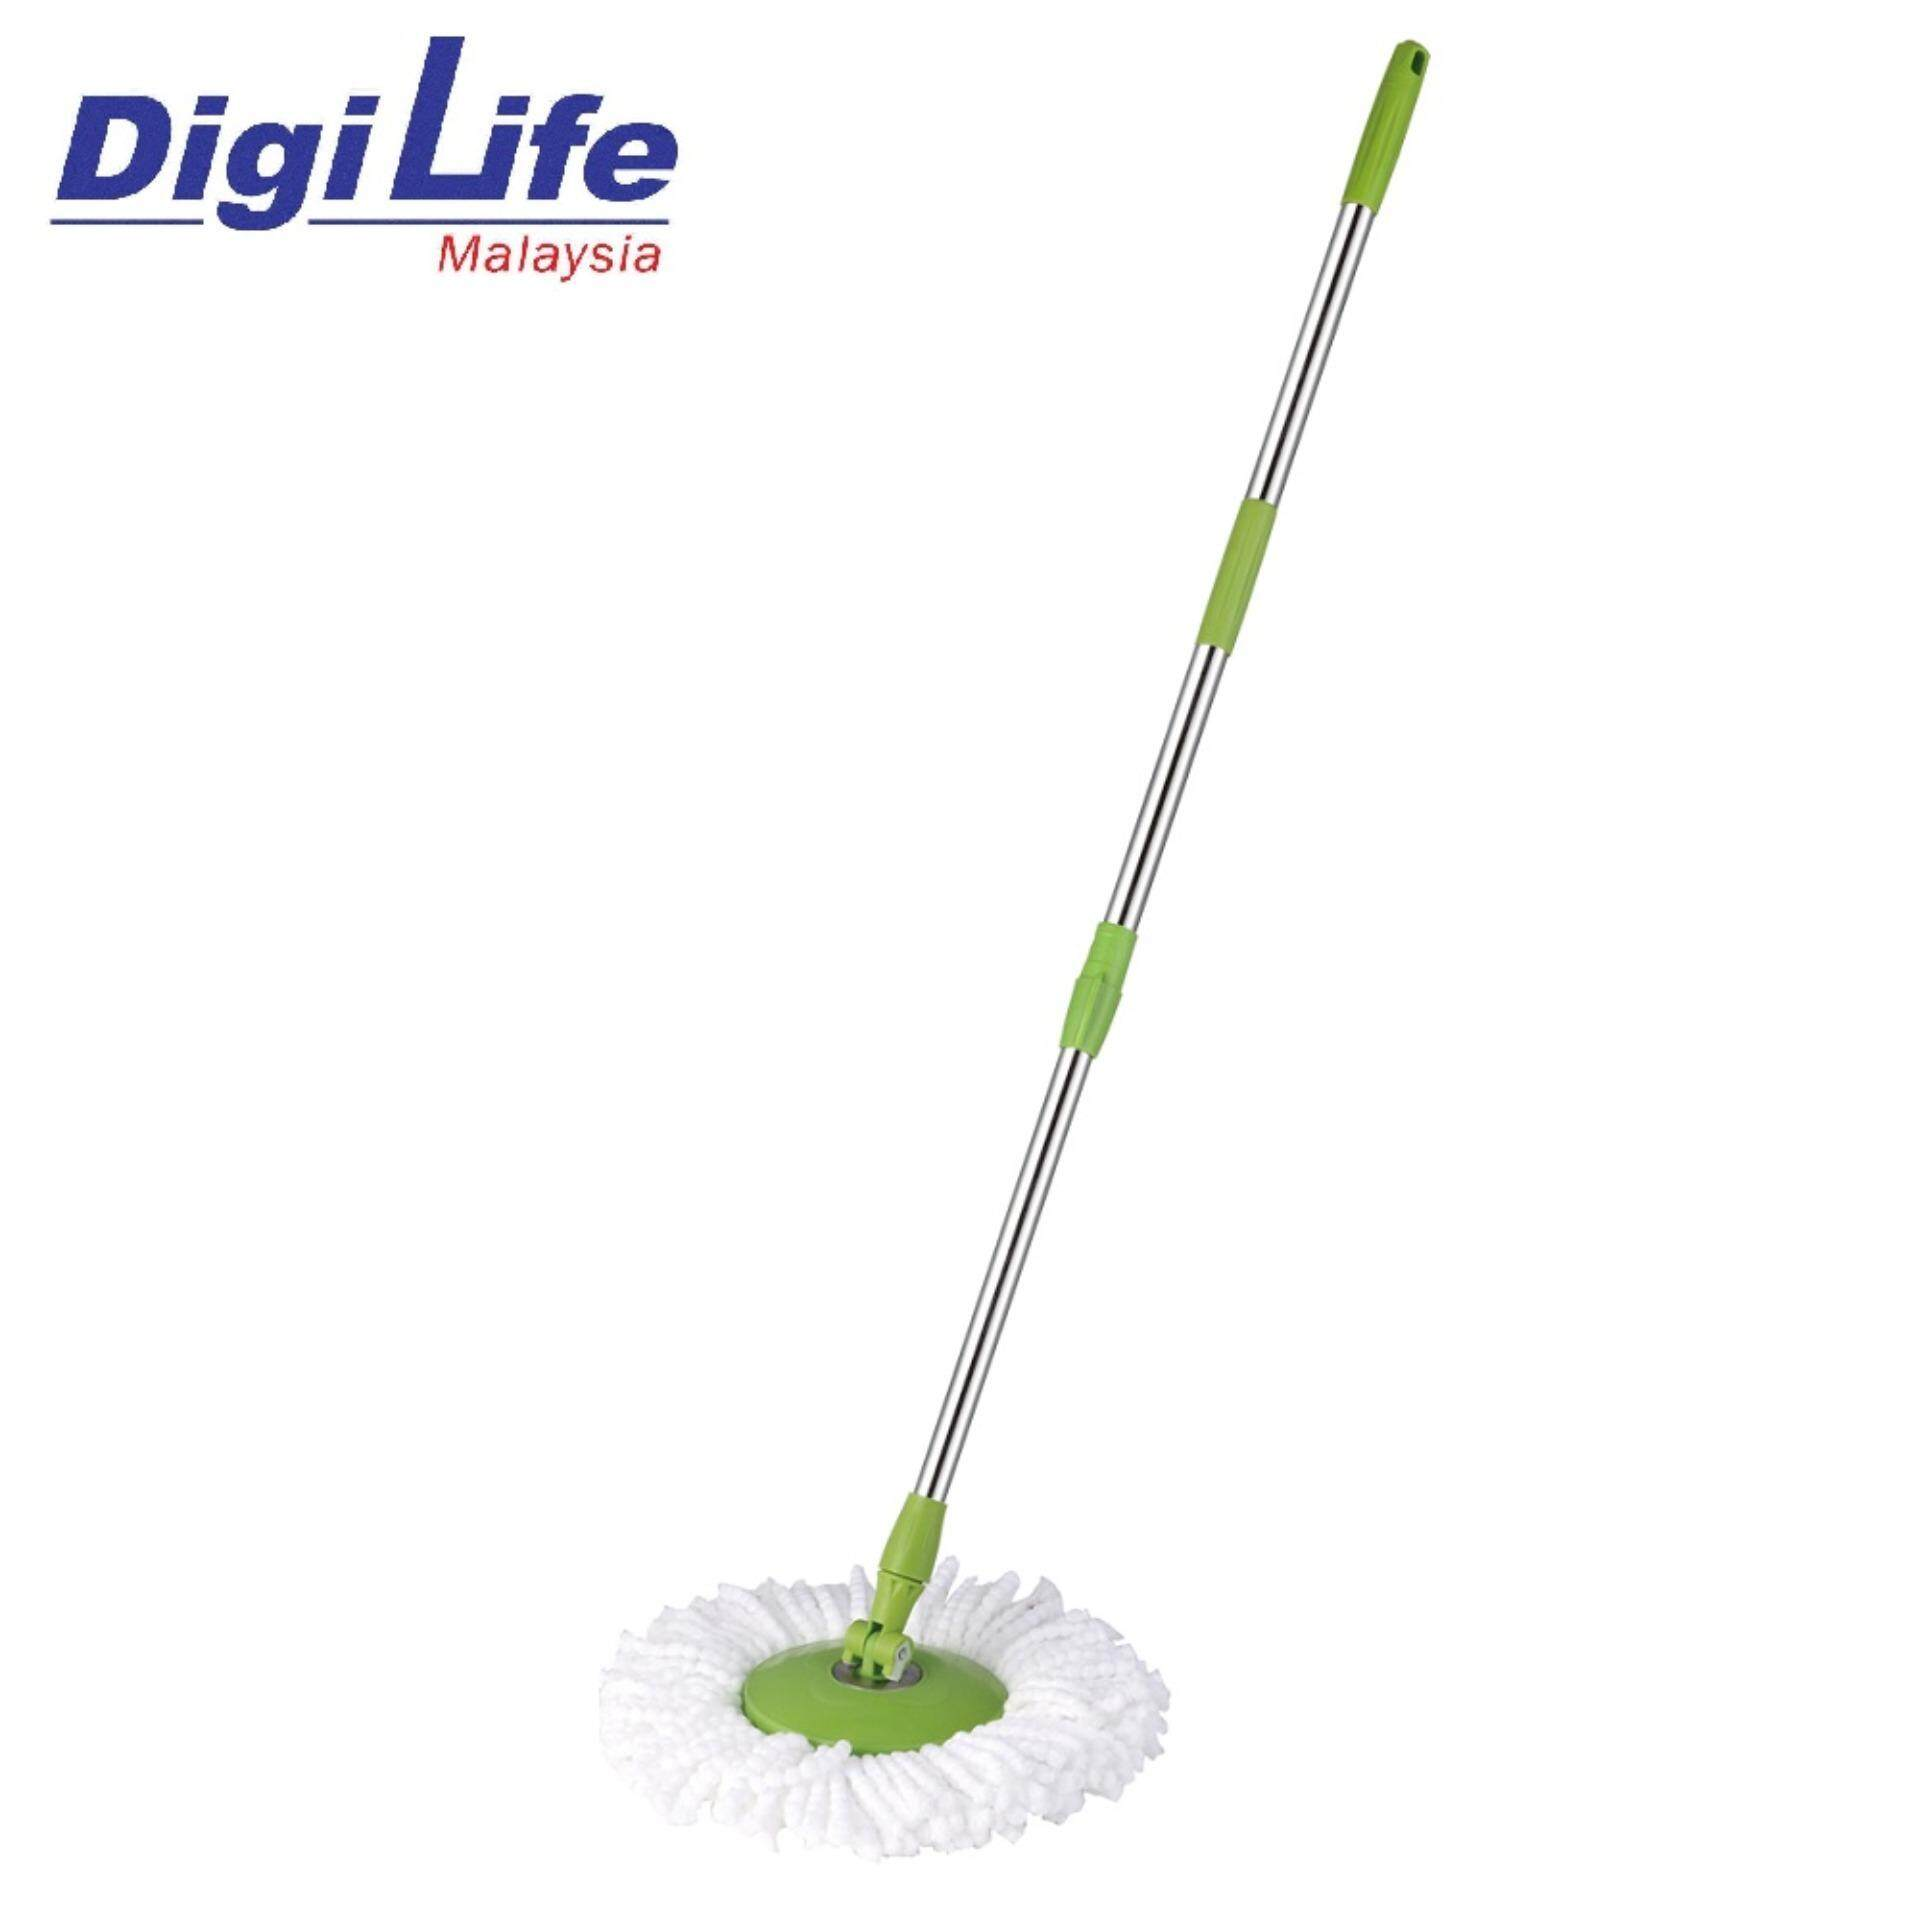 Stainless Steel Easy Mop Spin Mop Handle W/ Microfibre Mop Cloth Spare Parts / Accessories / Replacement By Digilife.